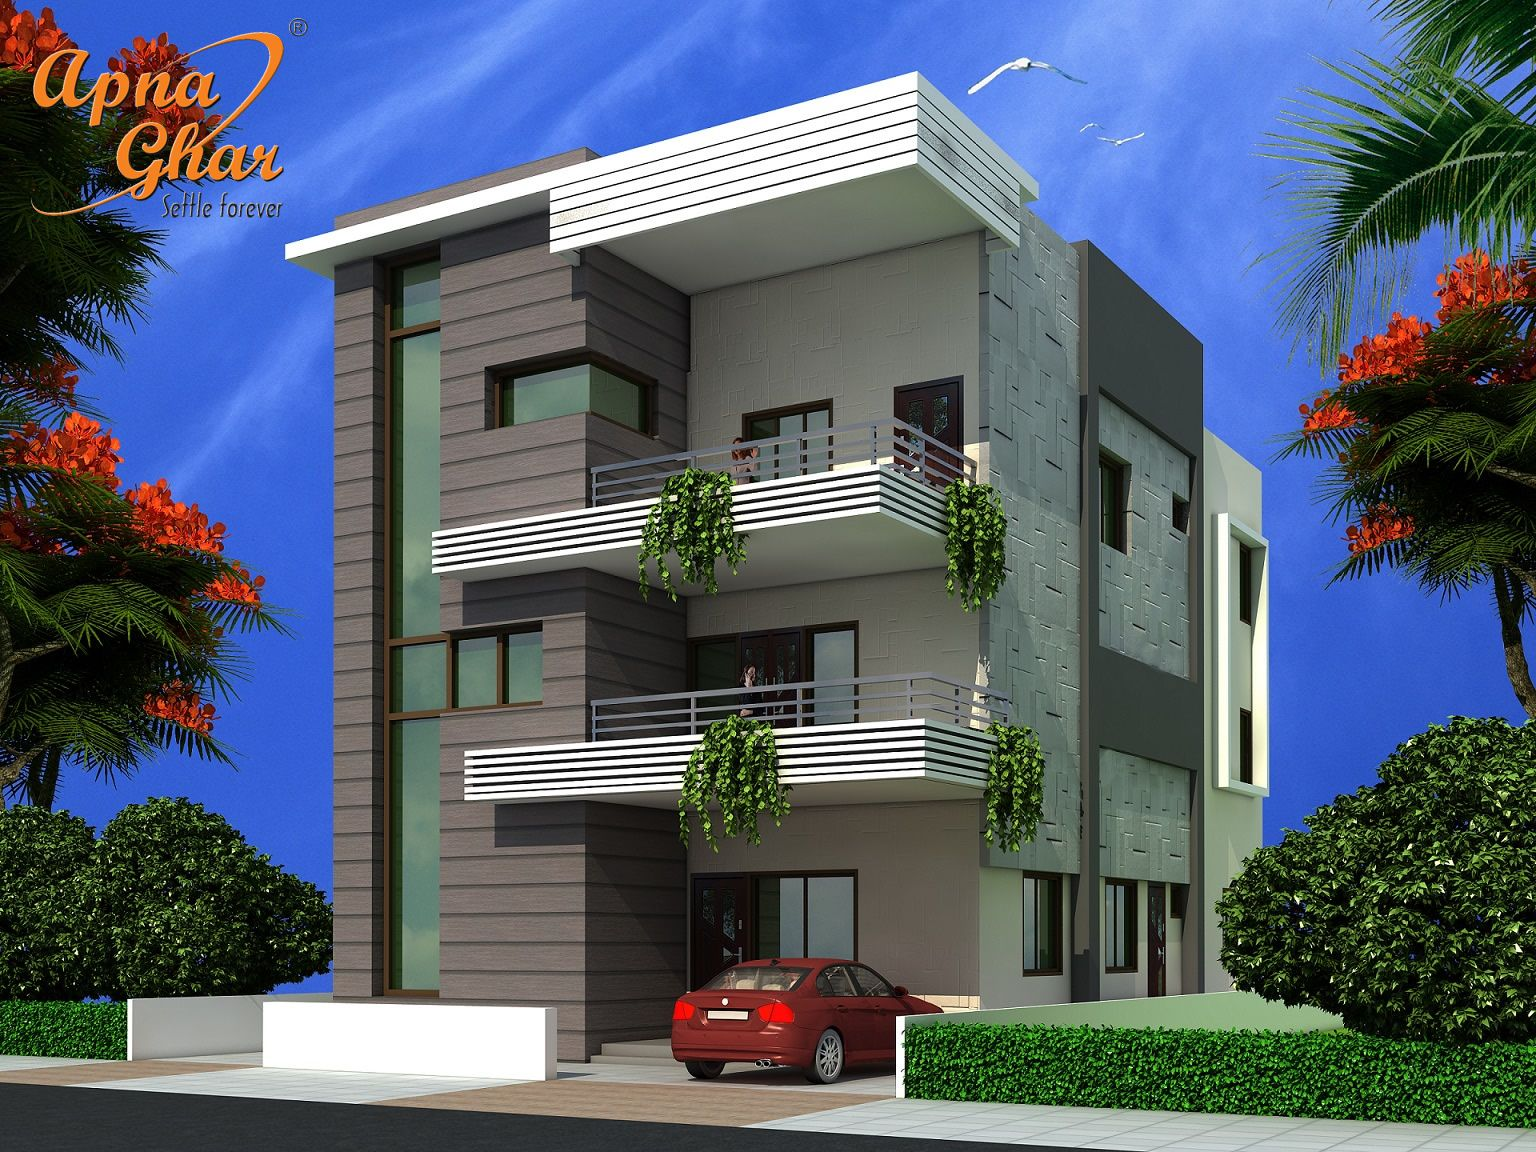 5 bedrooms triplex house design in 240m2 12m x 20m click for Home elevation front side